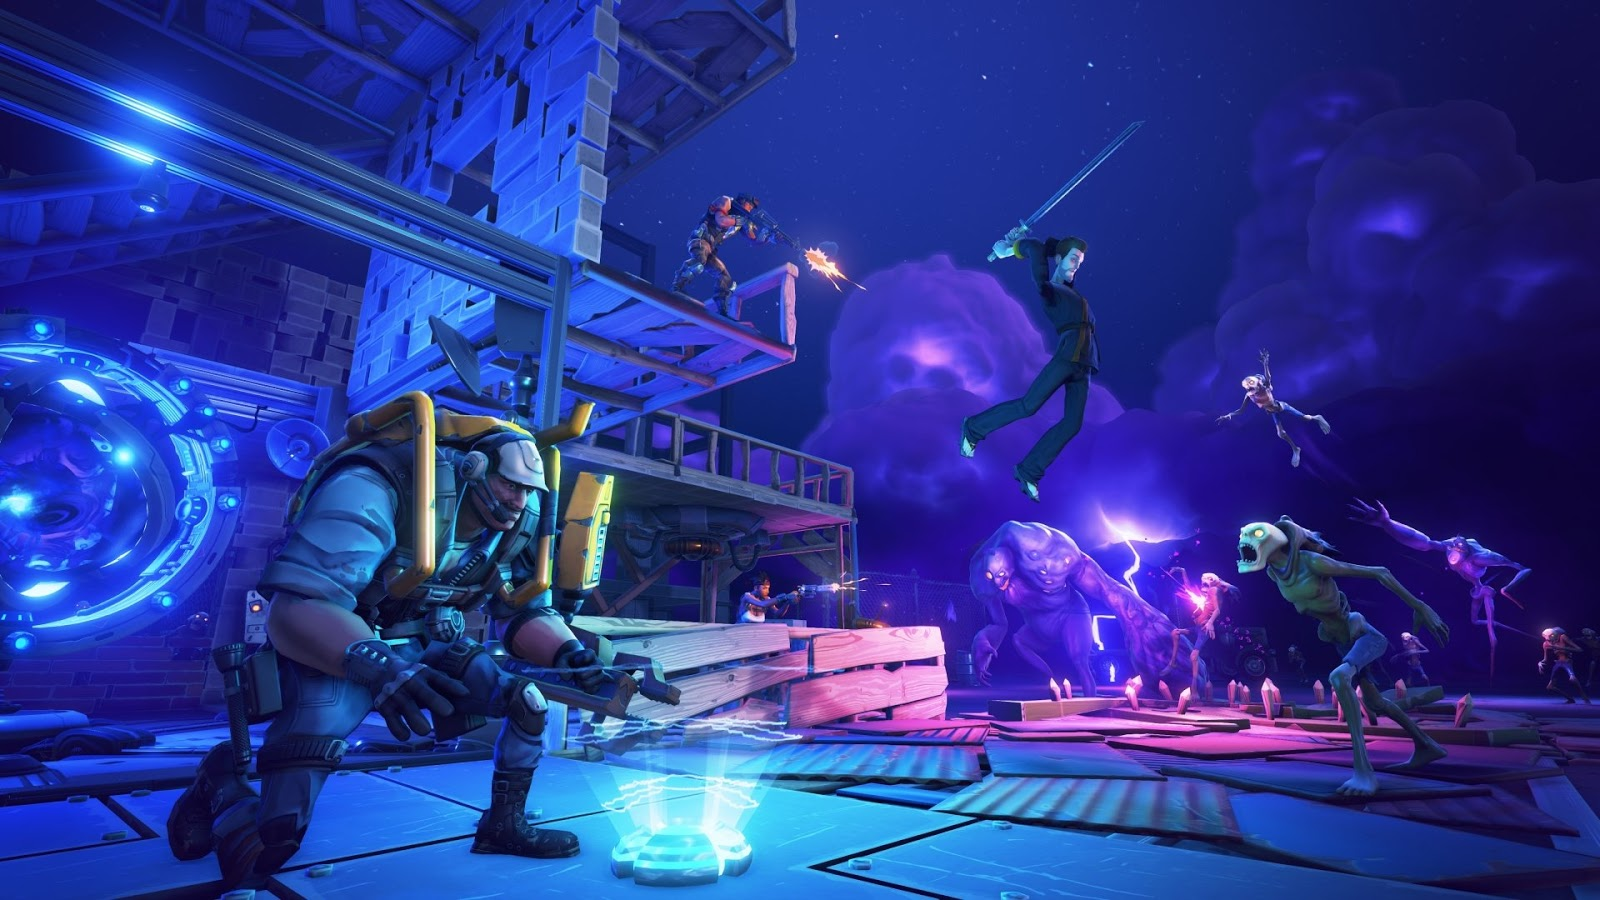 Download Fortnite HD Wallpapers  Read games review, play online games  download games wallpapers